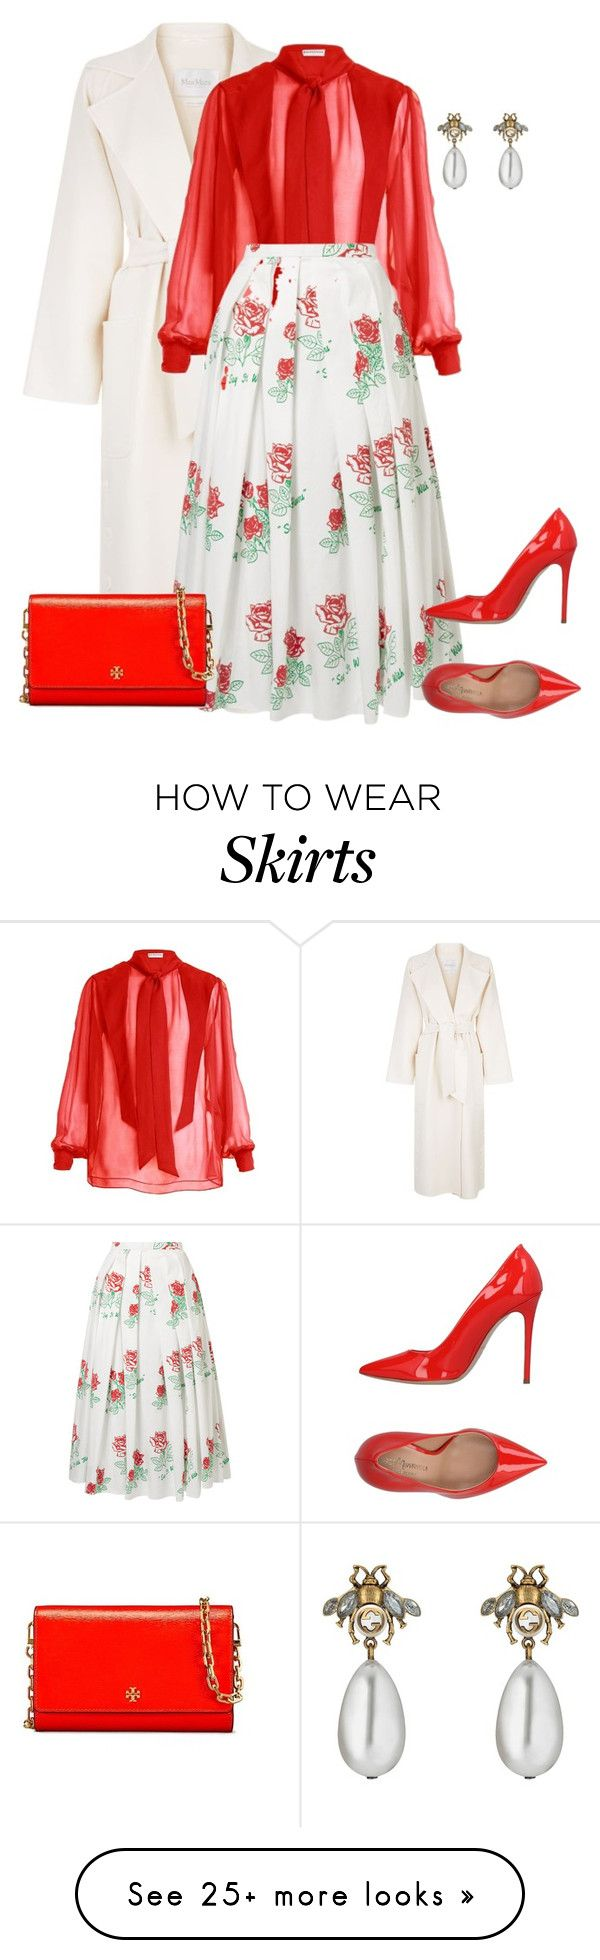 """outfit 7594"" by natalyag on Polyvore featuring MaxMara, Balenciaga, Rosie Assoulin, Marco Barbabella, Tory Burch and Gucci"